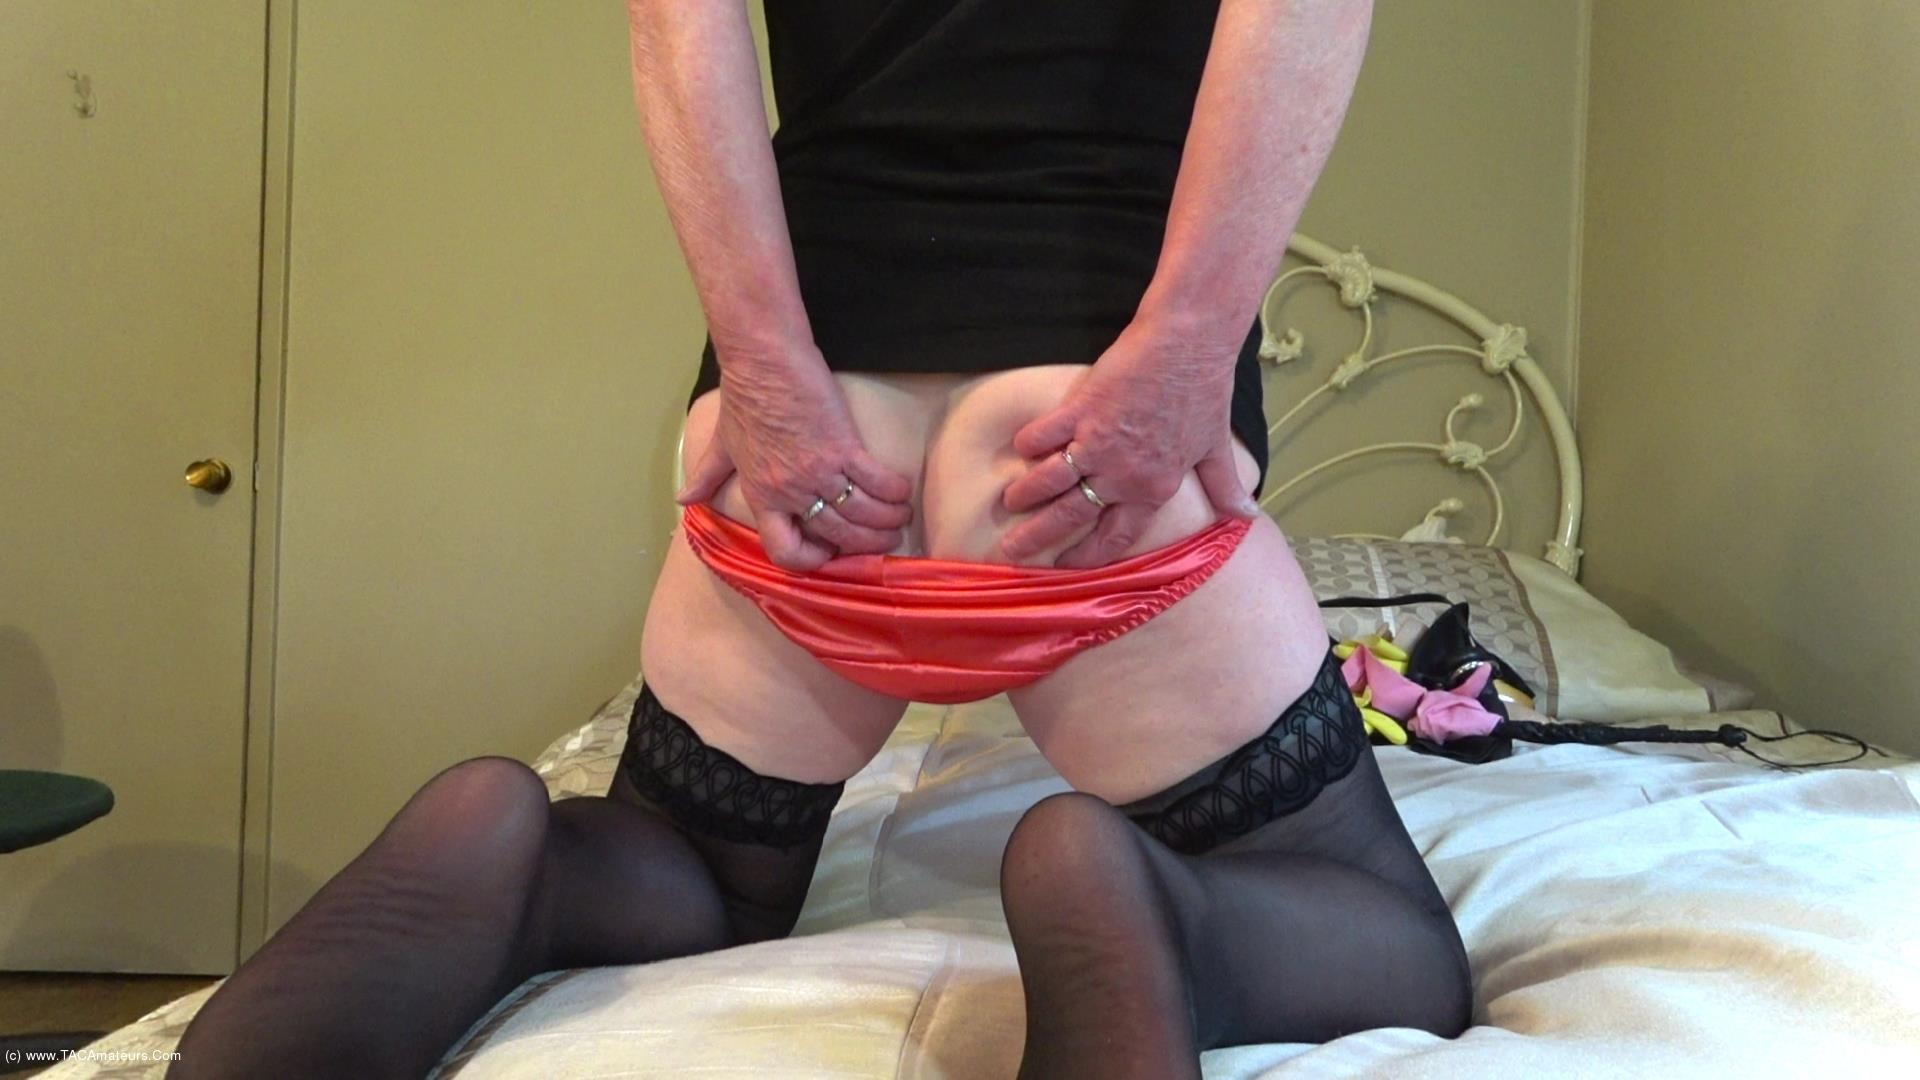 CougarBabeJolee - You Want My Dirty Puckered Arsehole scene 0